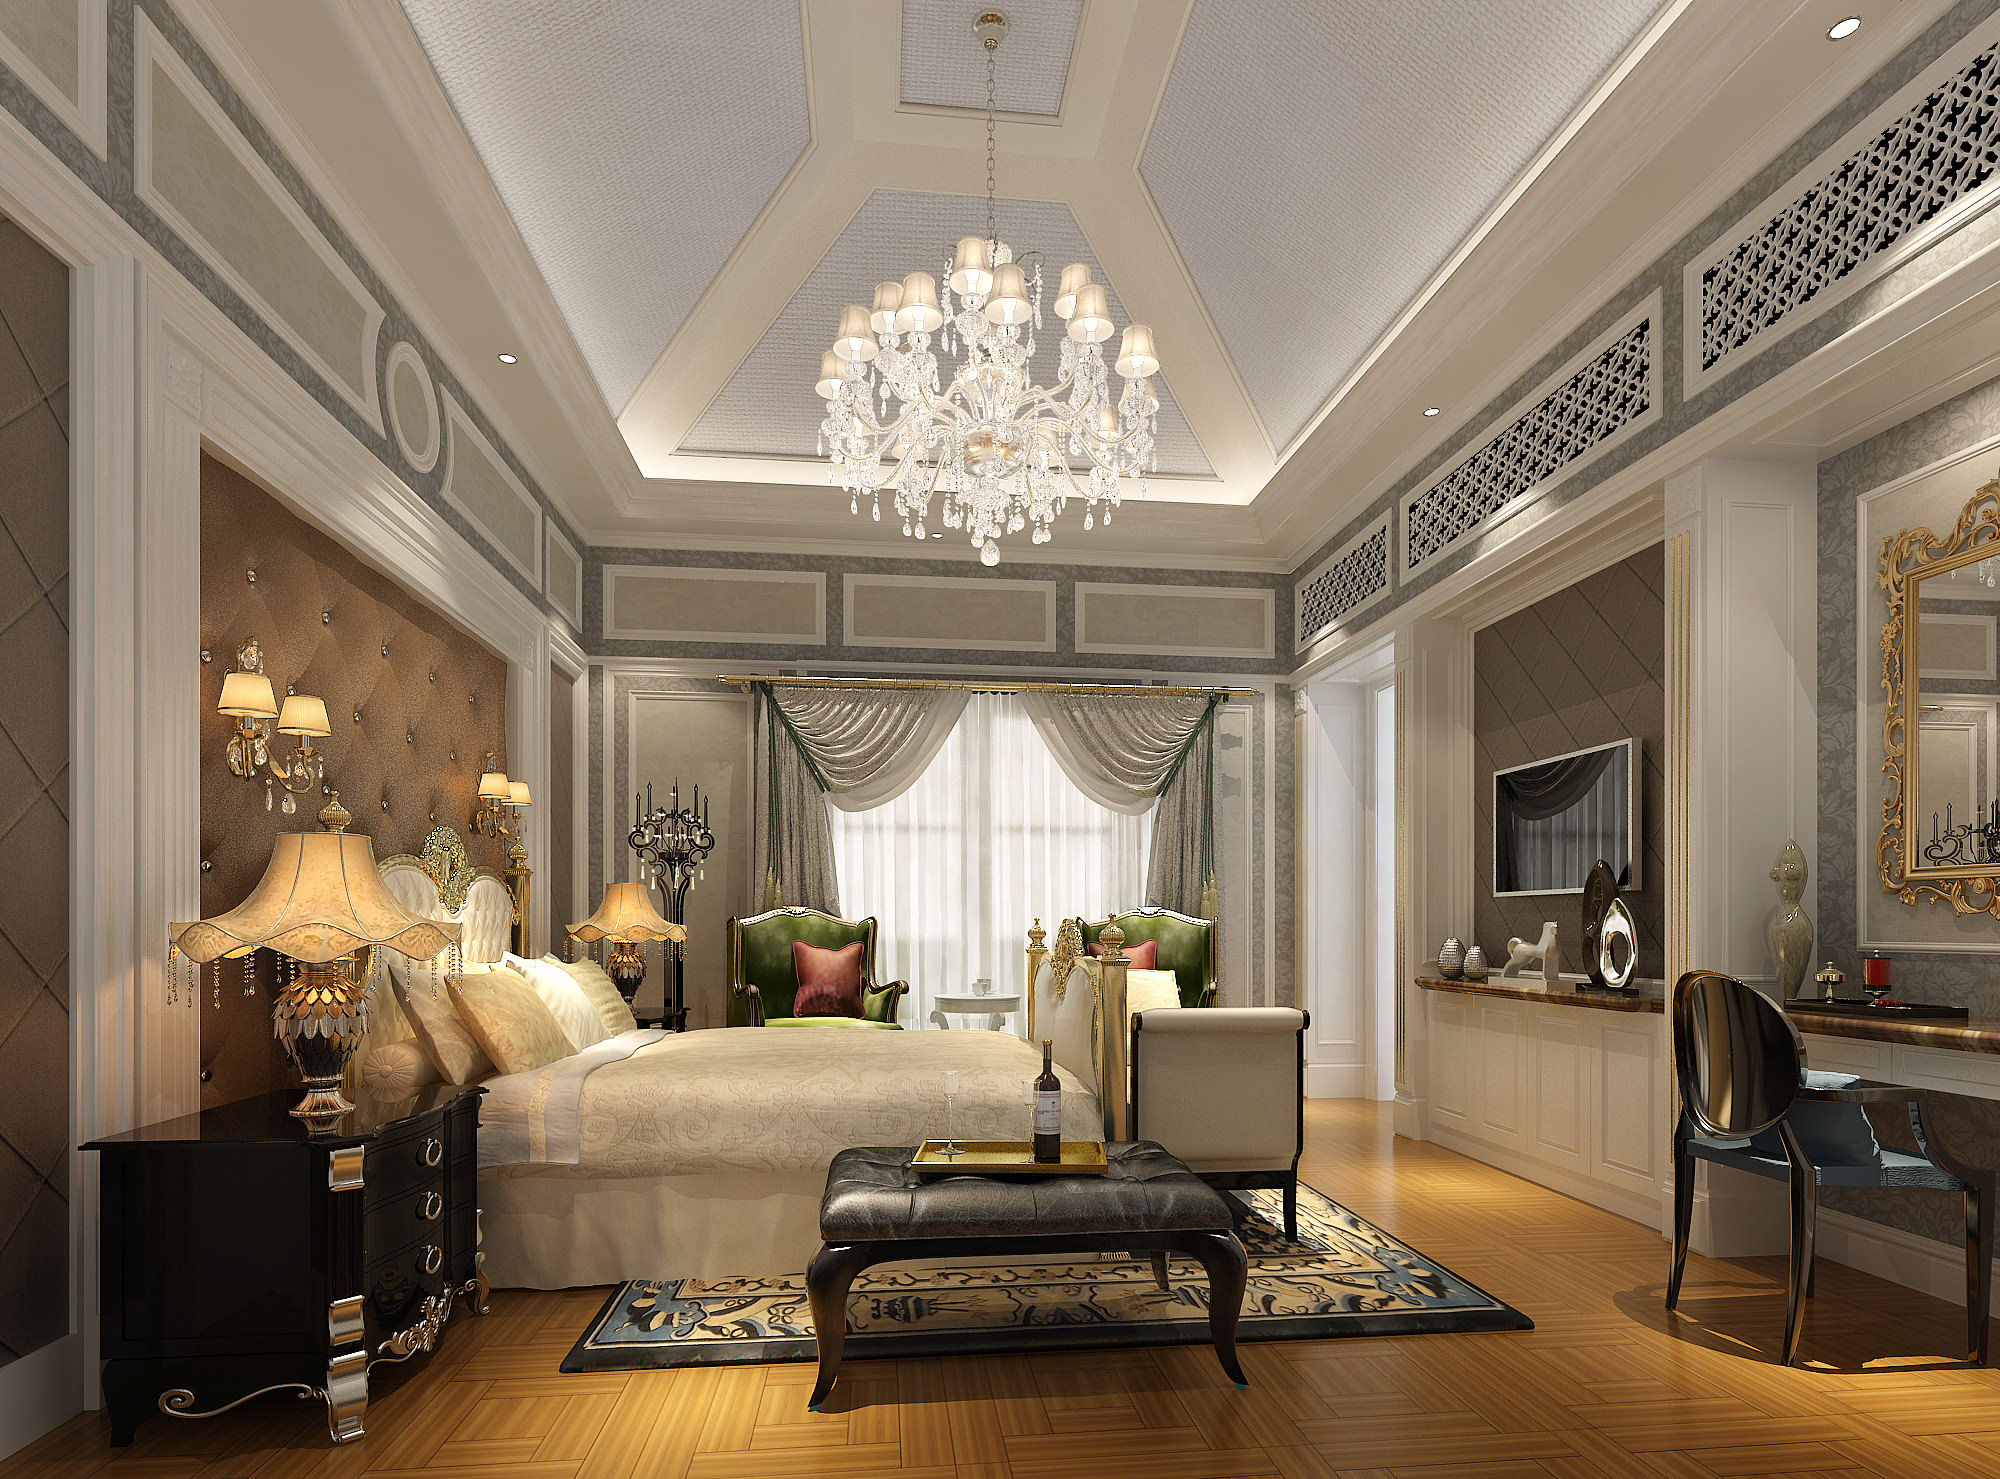 Luxury Bedroom 3D Model Max